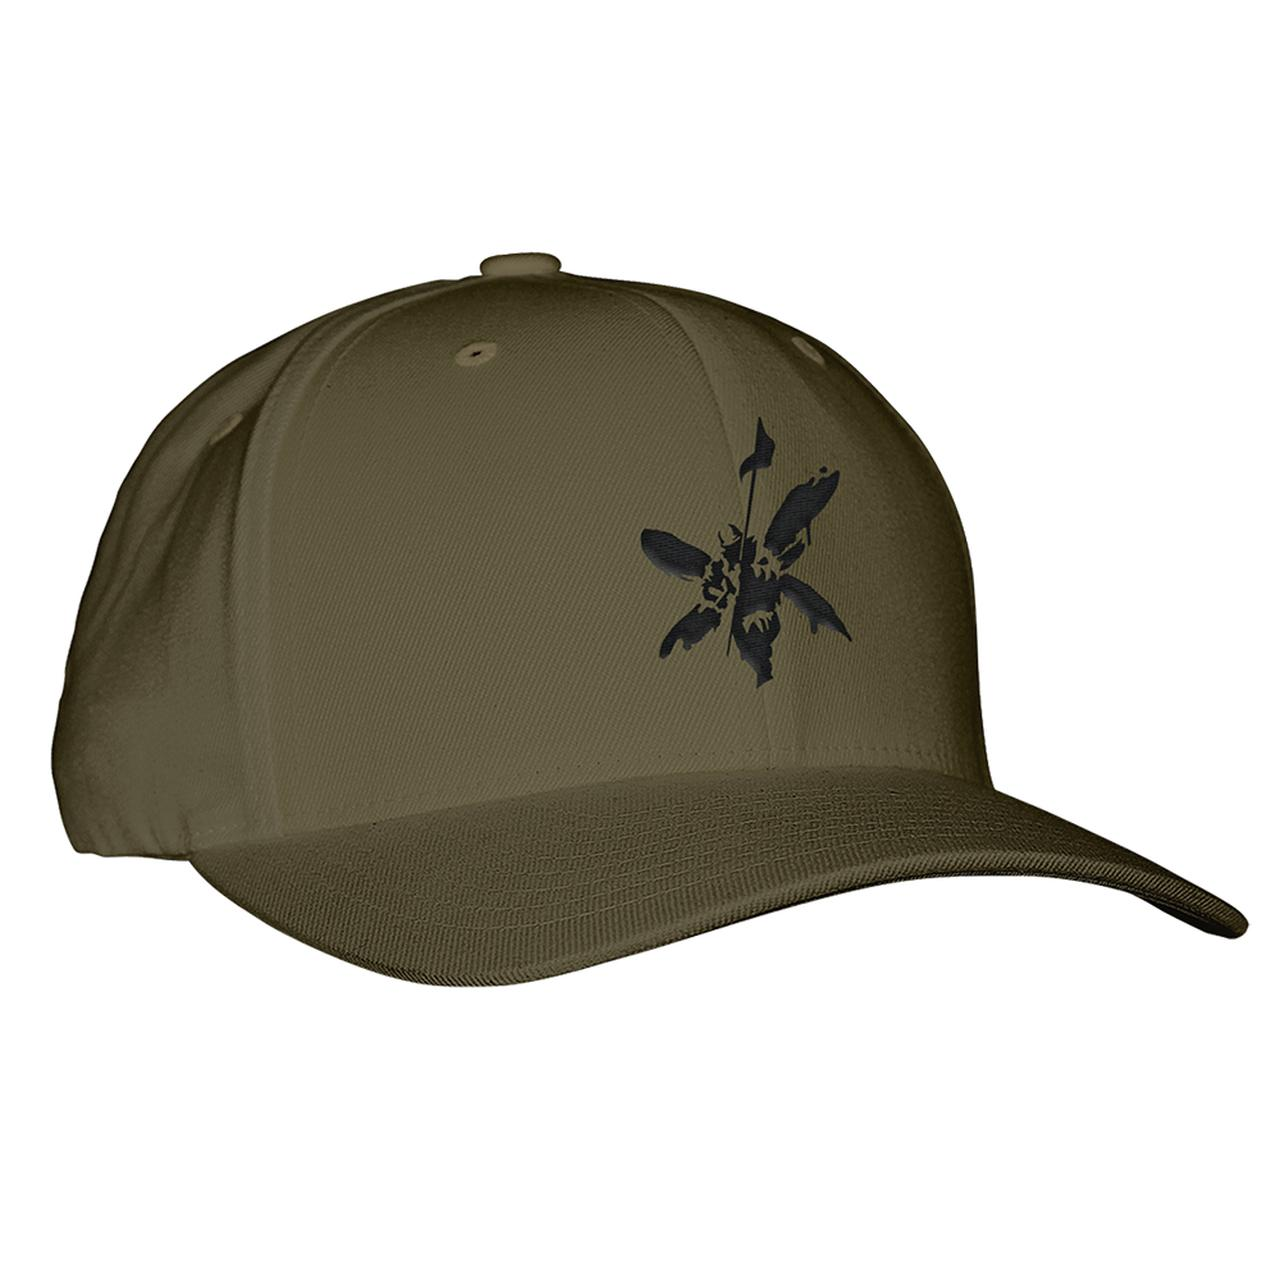 Linkin Park. Street Soldier Military Green Dad Hat e7038ed46e0